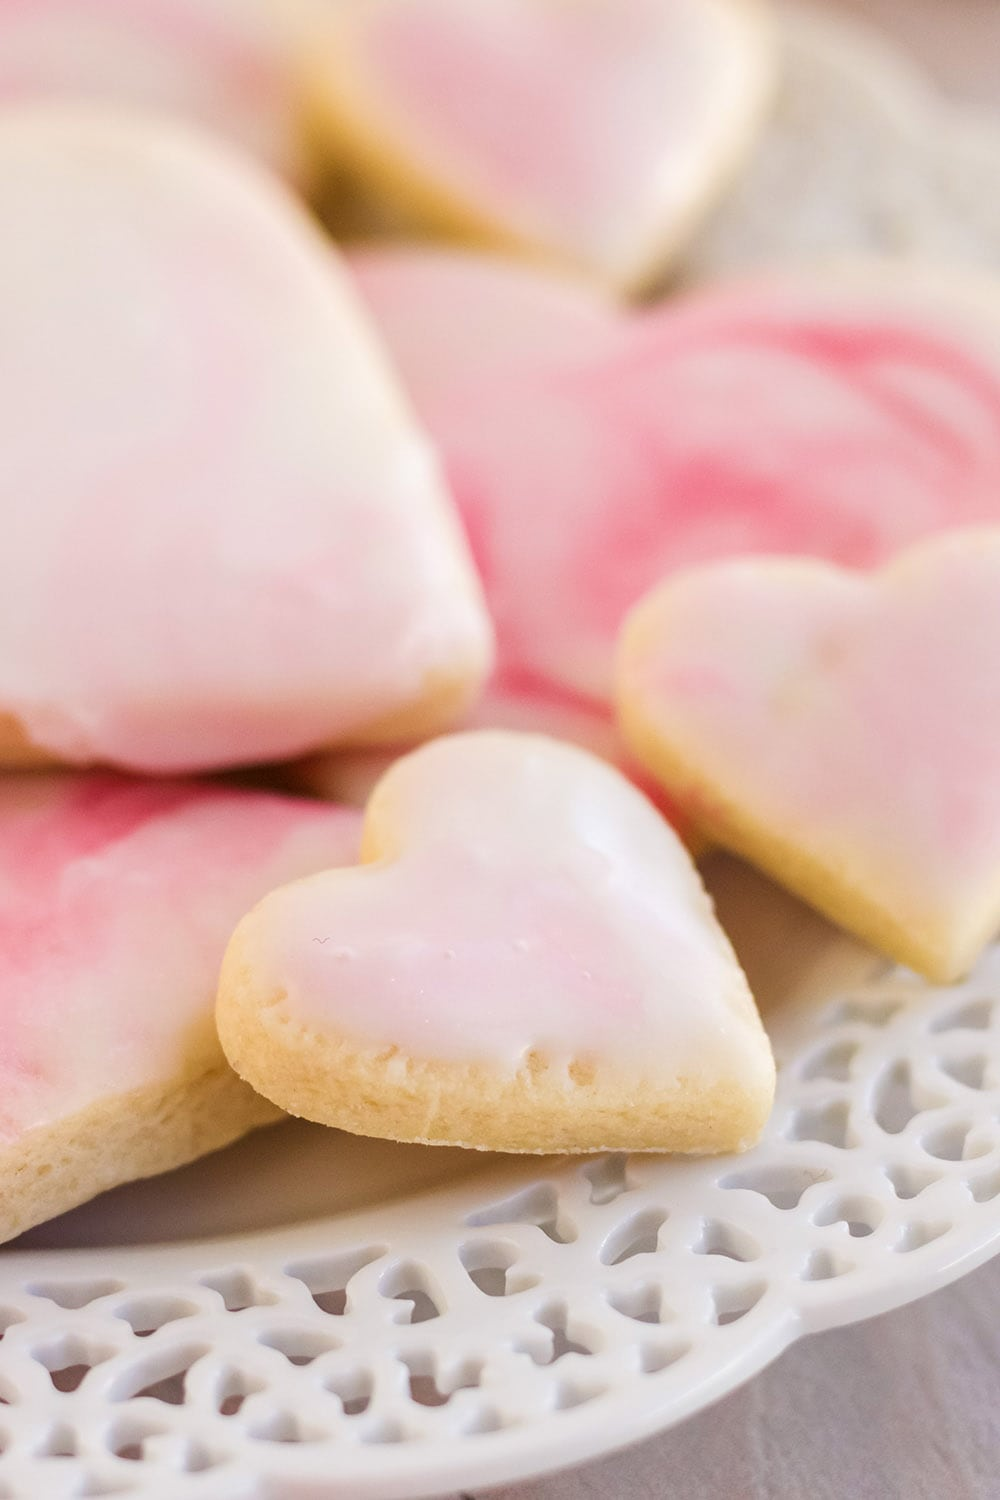 Plate of sugar cookies shaped into hearts with pink and white marble icing.